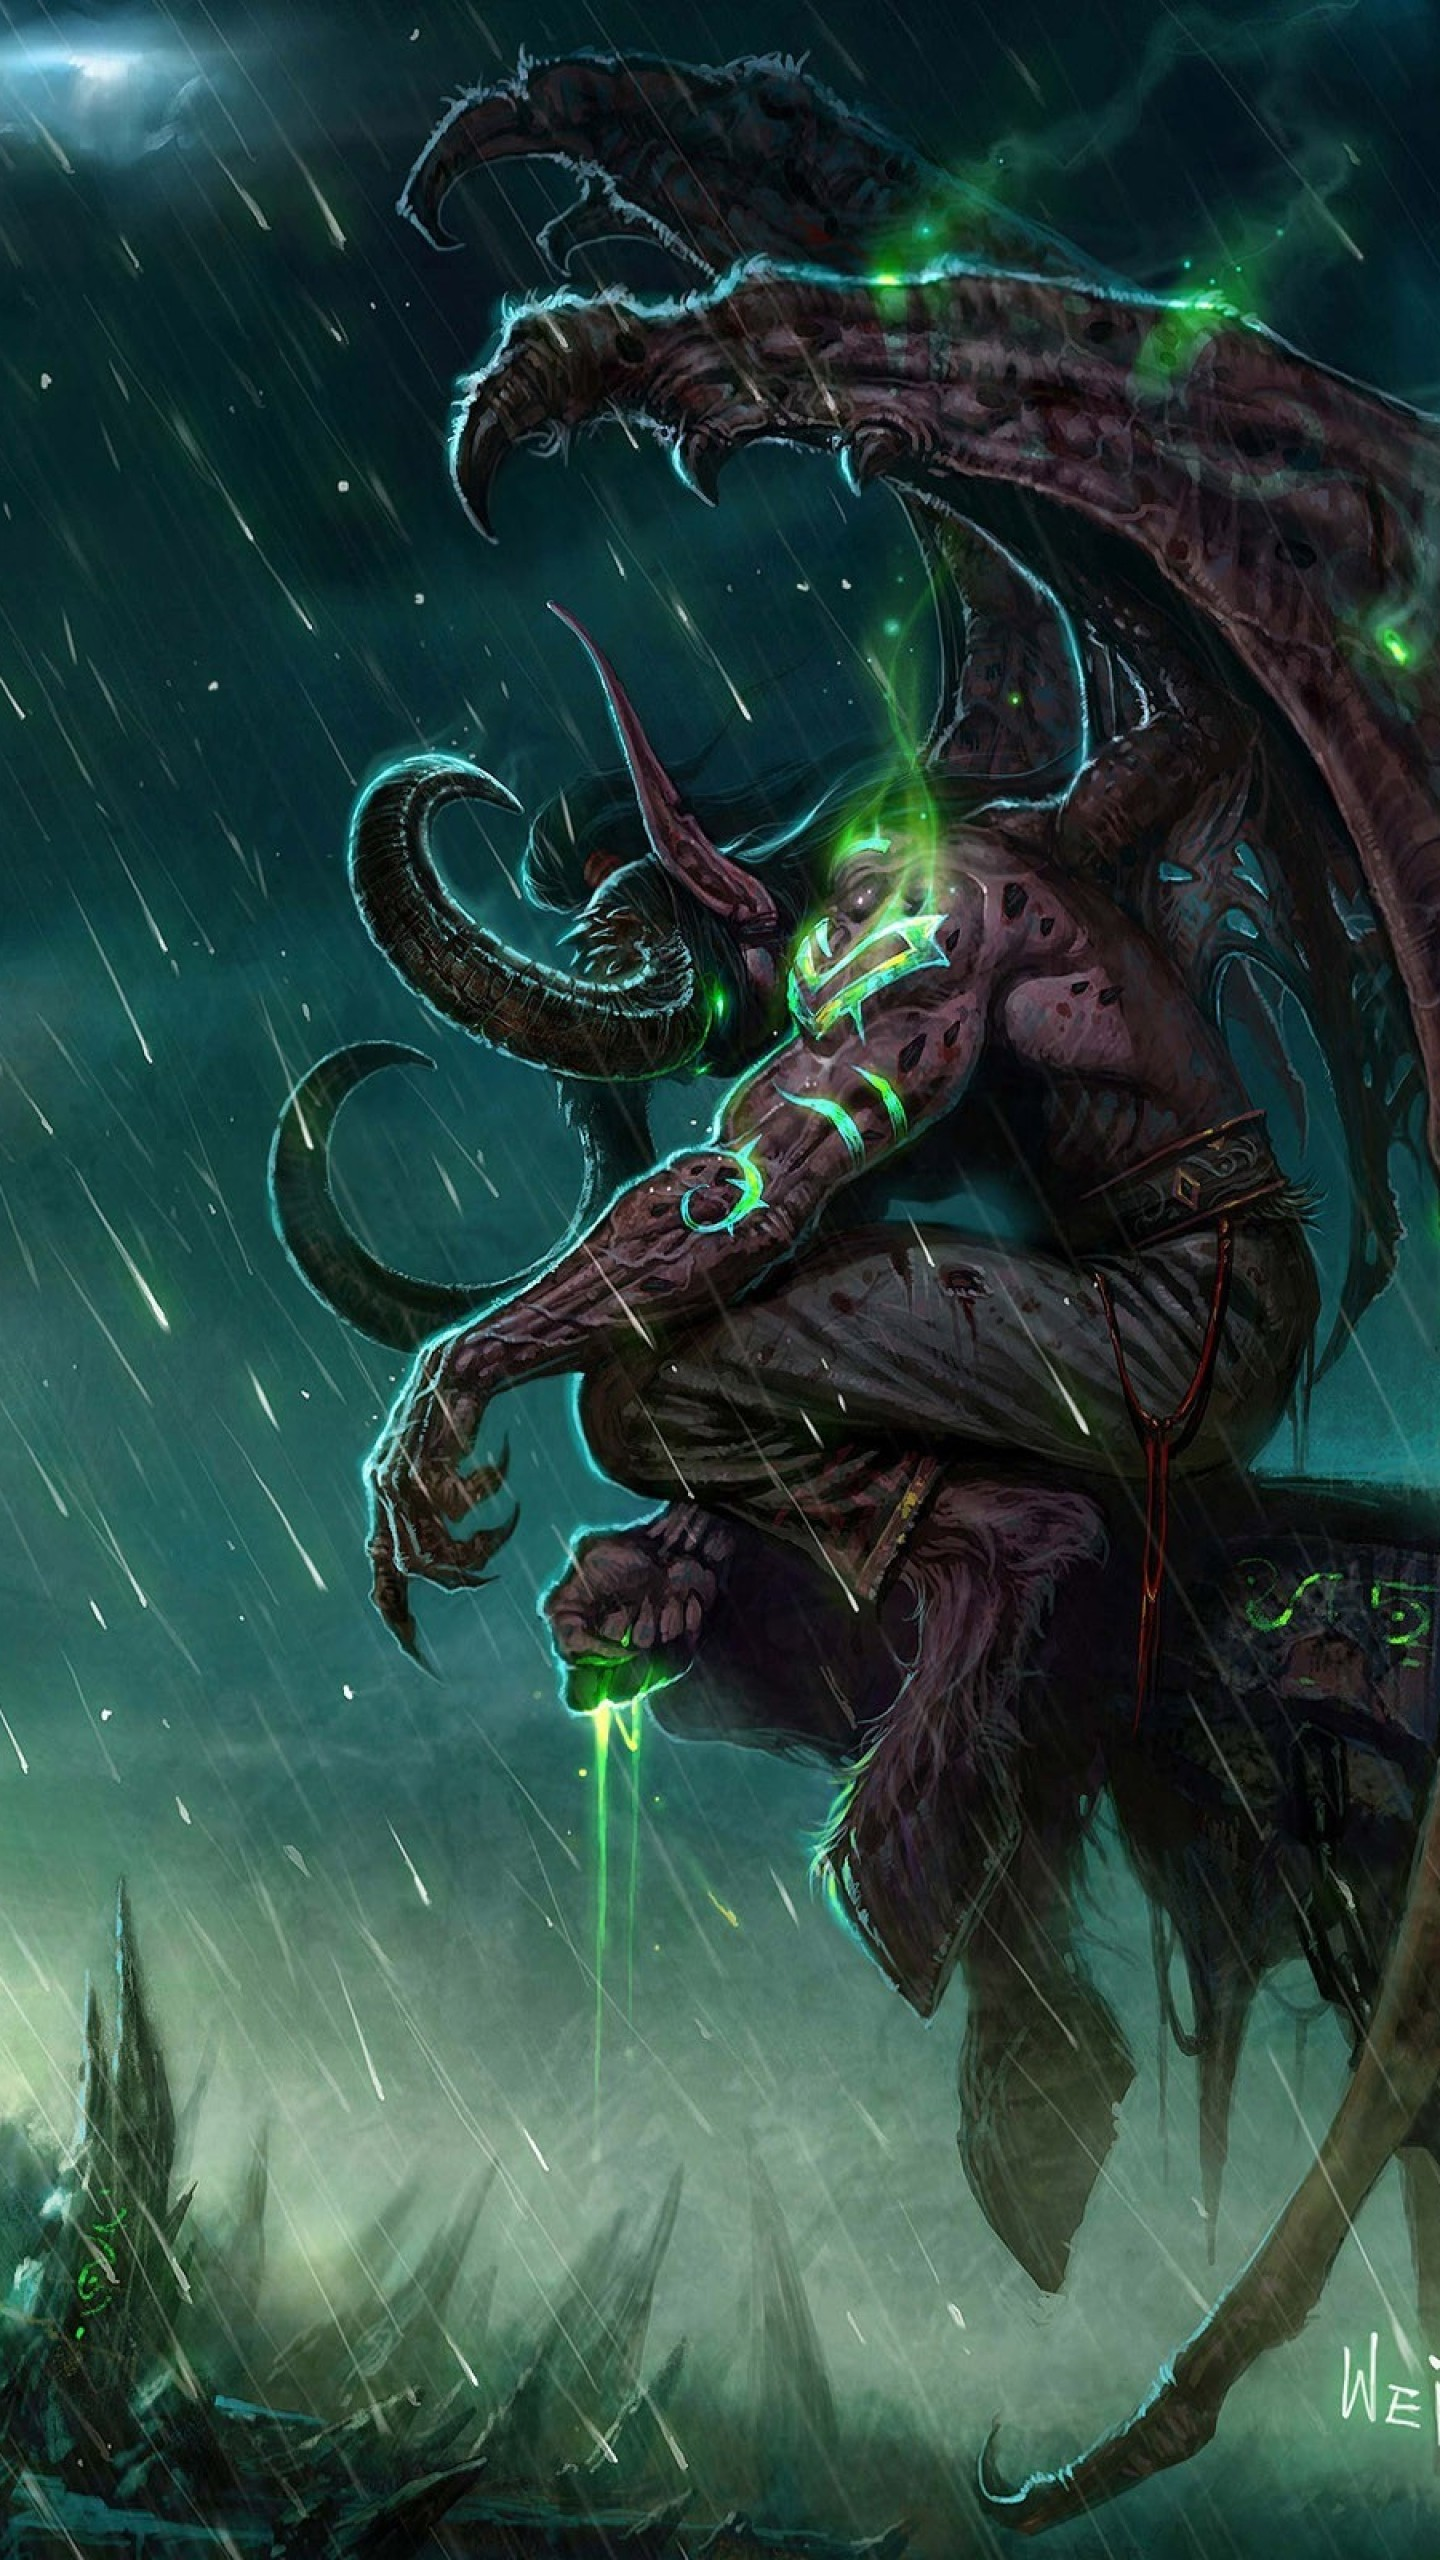 Wallpaper wow, illidan, world of warcraft, castle, monster, bad  weather